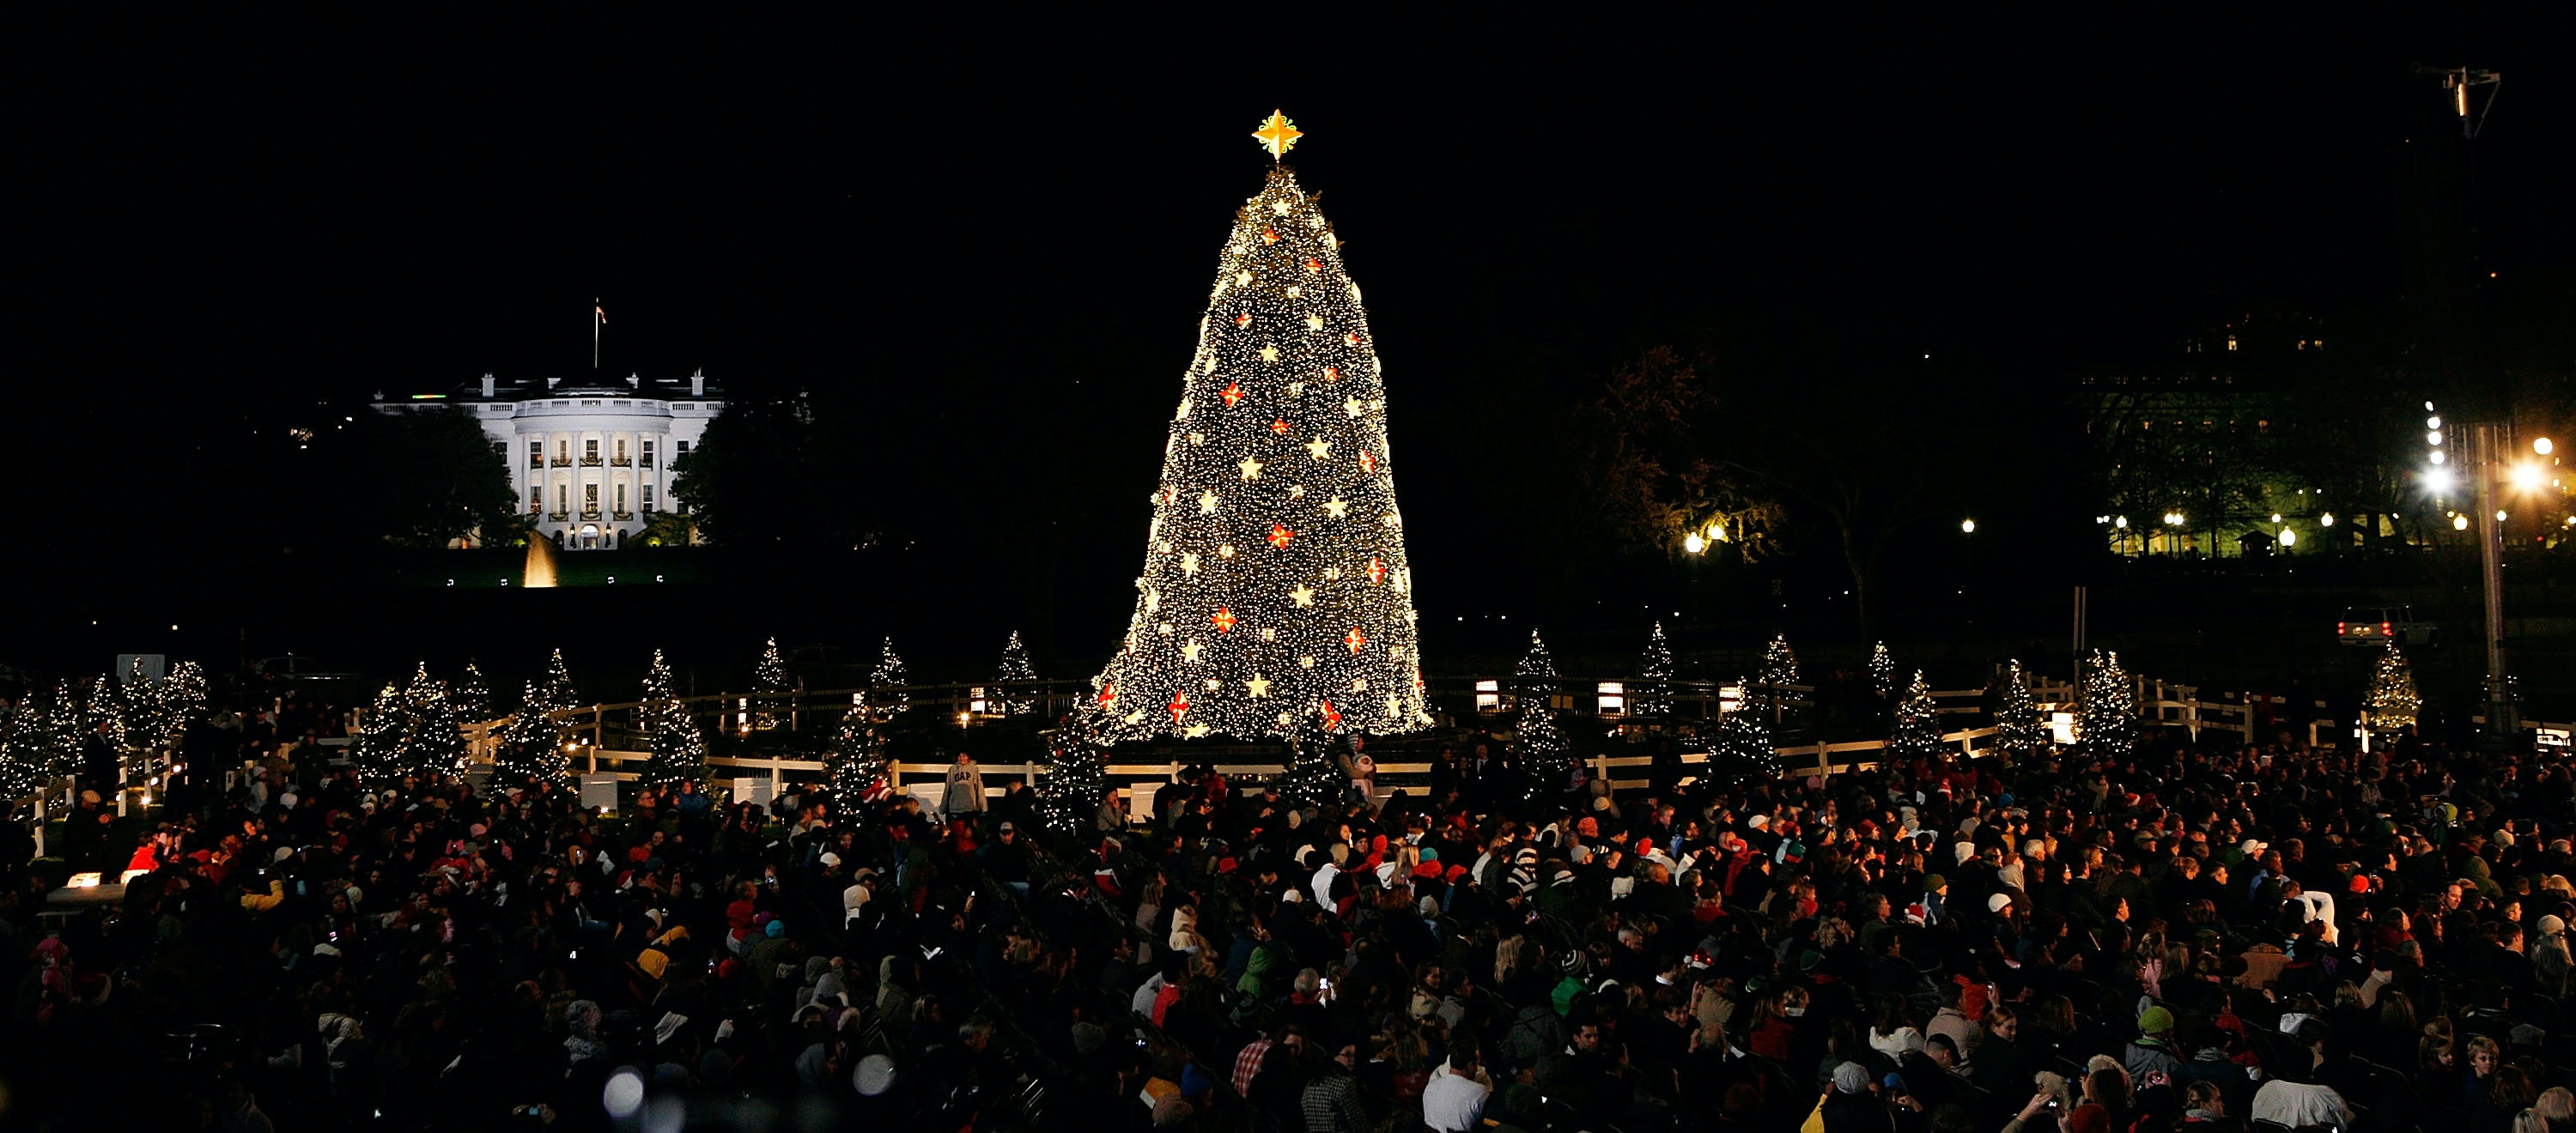 How To Watch The National Christmas Tree Lighting If You Donu0027t Plan On Being In D.C. & How To Watch The National Christmas Tree Lighting If You Donu0027t ... azcodes.com